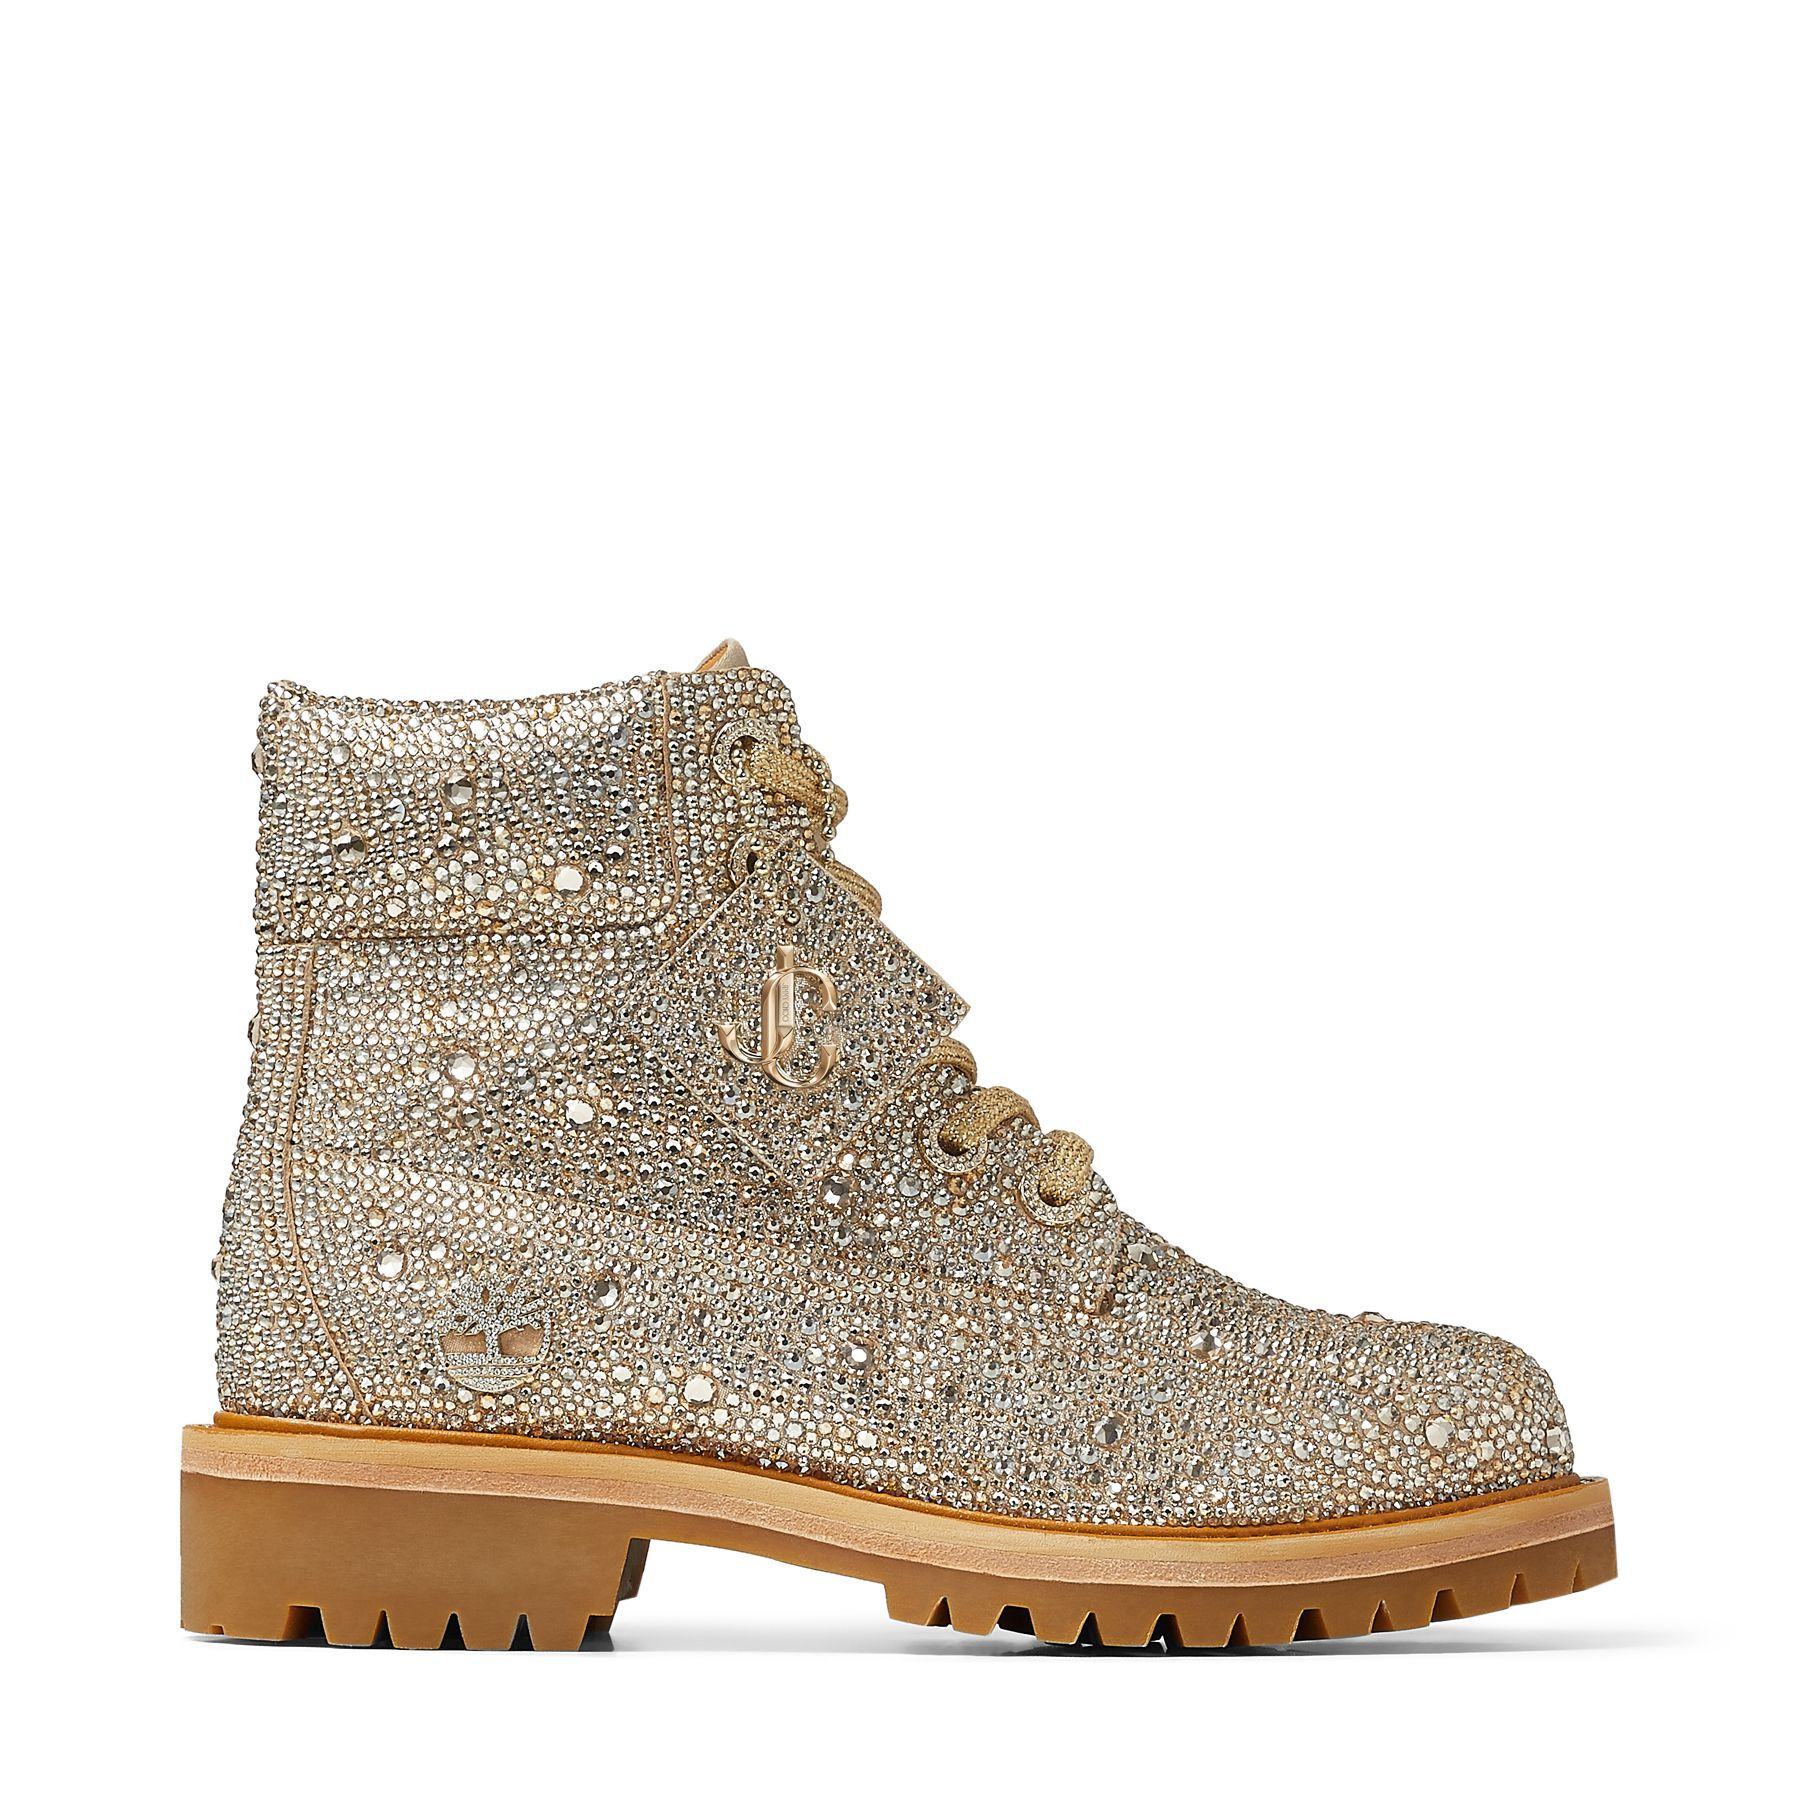 JC X TIMBERLAND/F - Golden Mix Shimmer Suede Boots with Crystal Hotfix